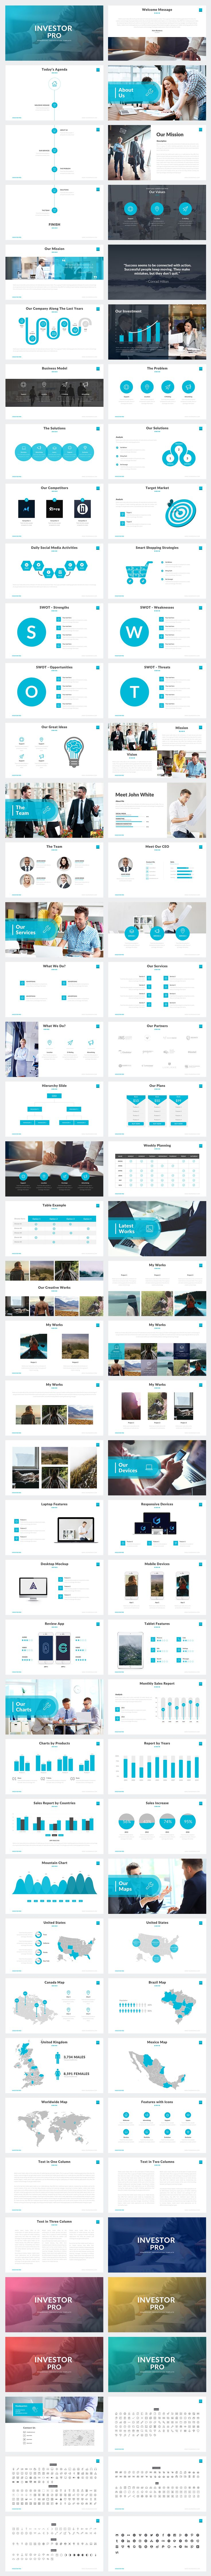 36 best powerpoint template images on pinterest presentation investor pro powerpoint template by rocketo graphics on creativemarket toneelgroepblik Choice Image